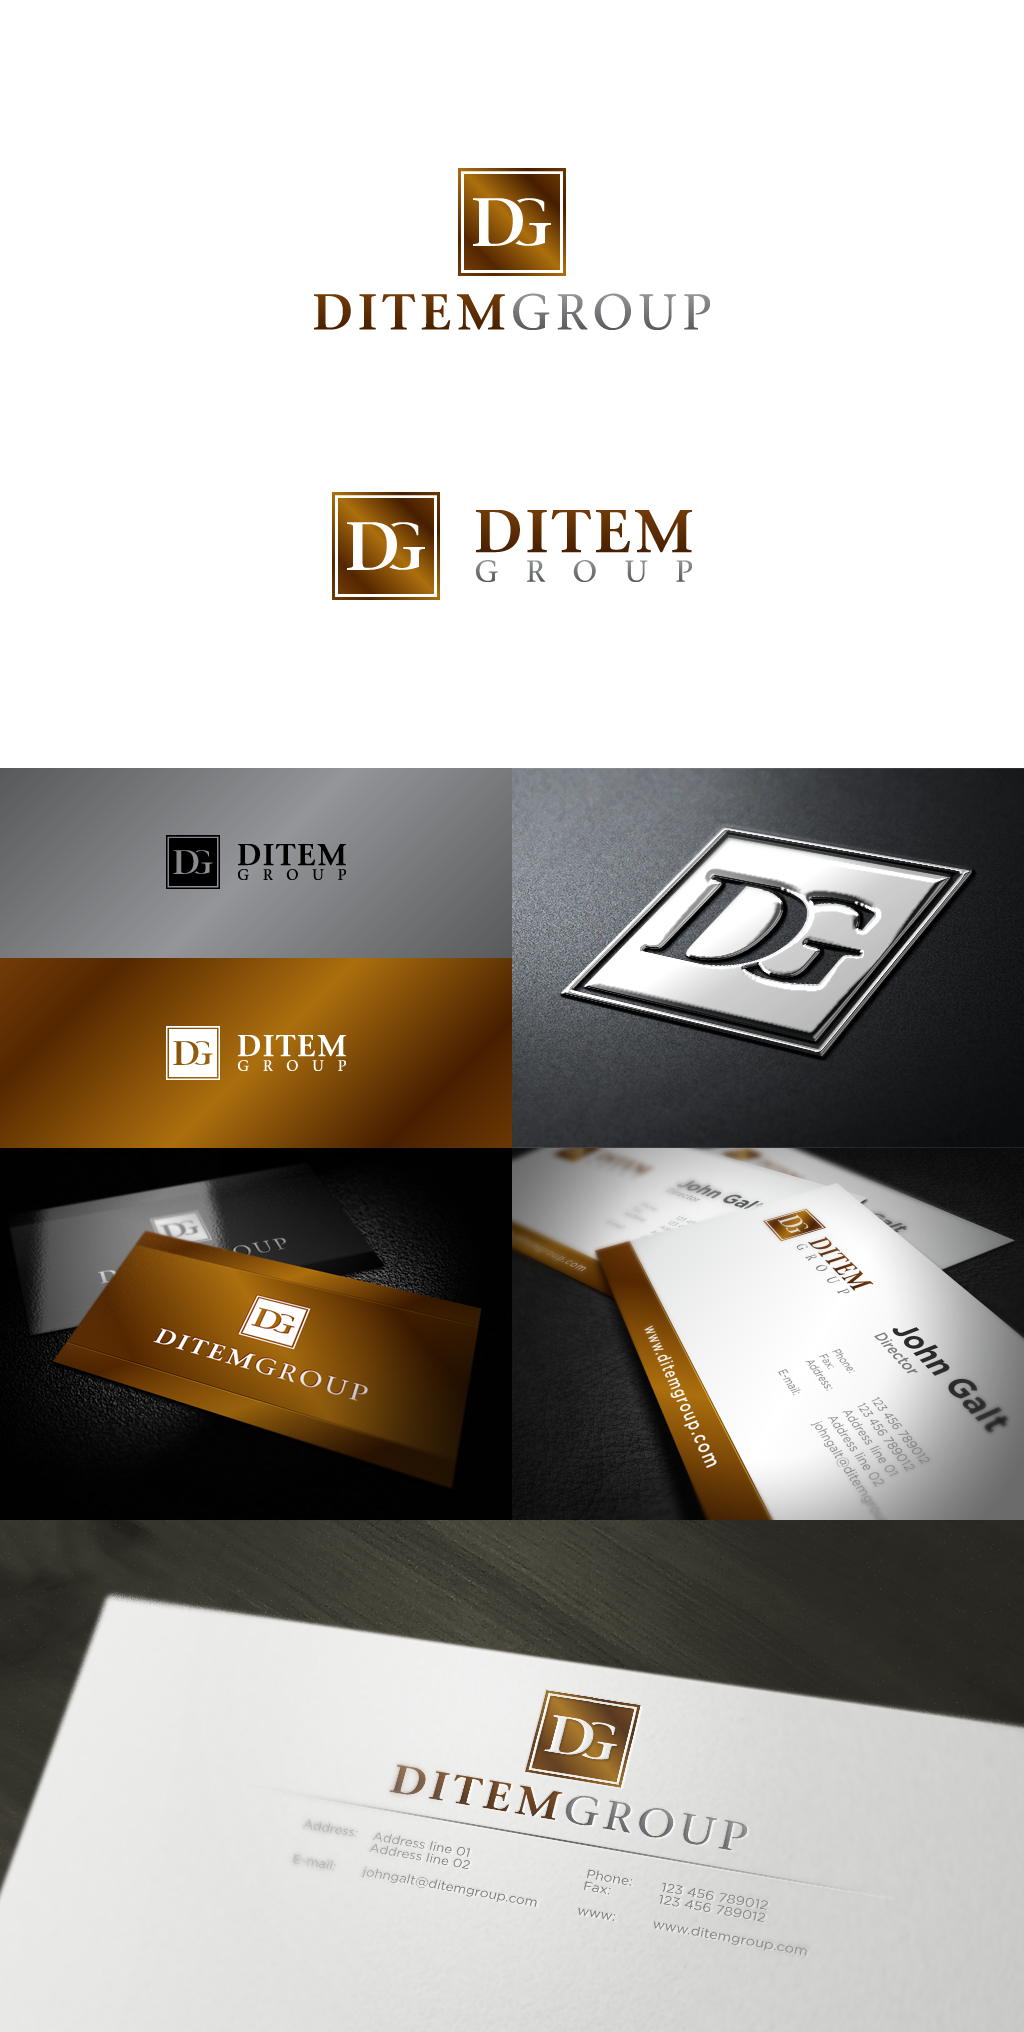 Help Ditem Group with a new logo